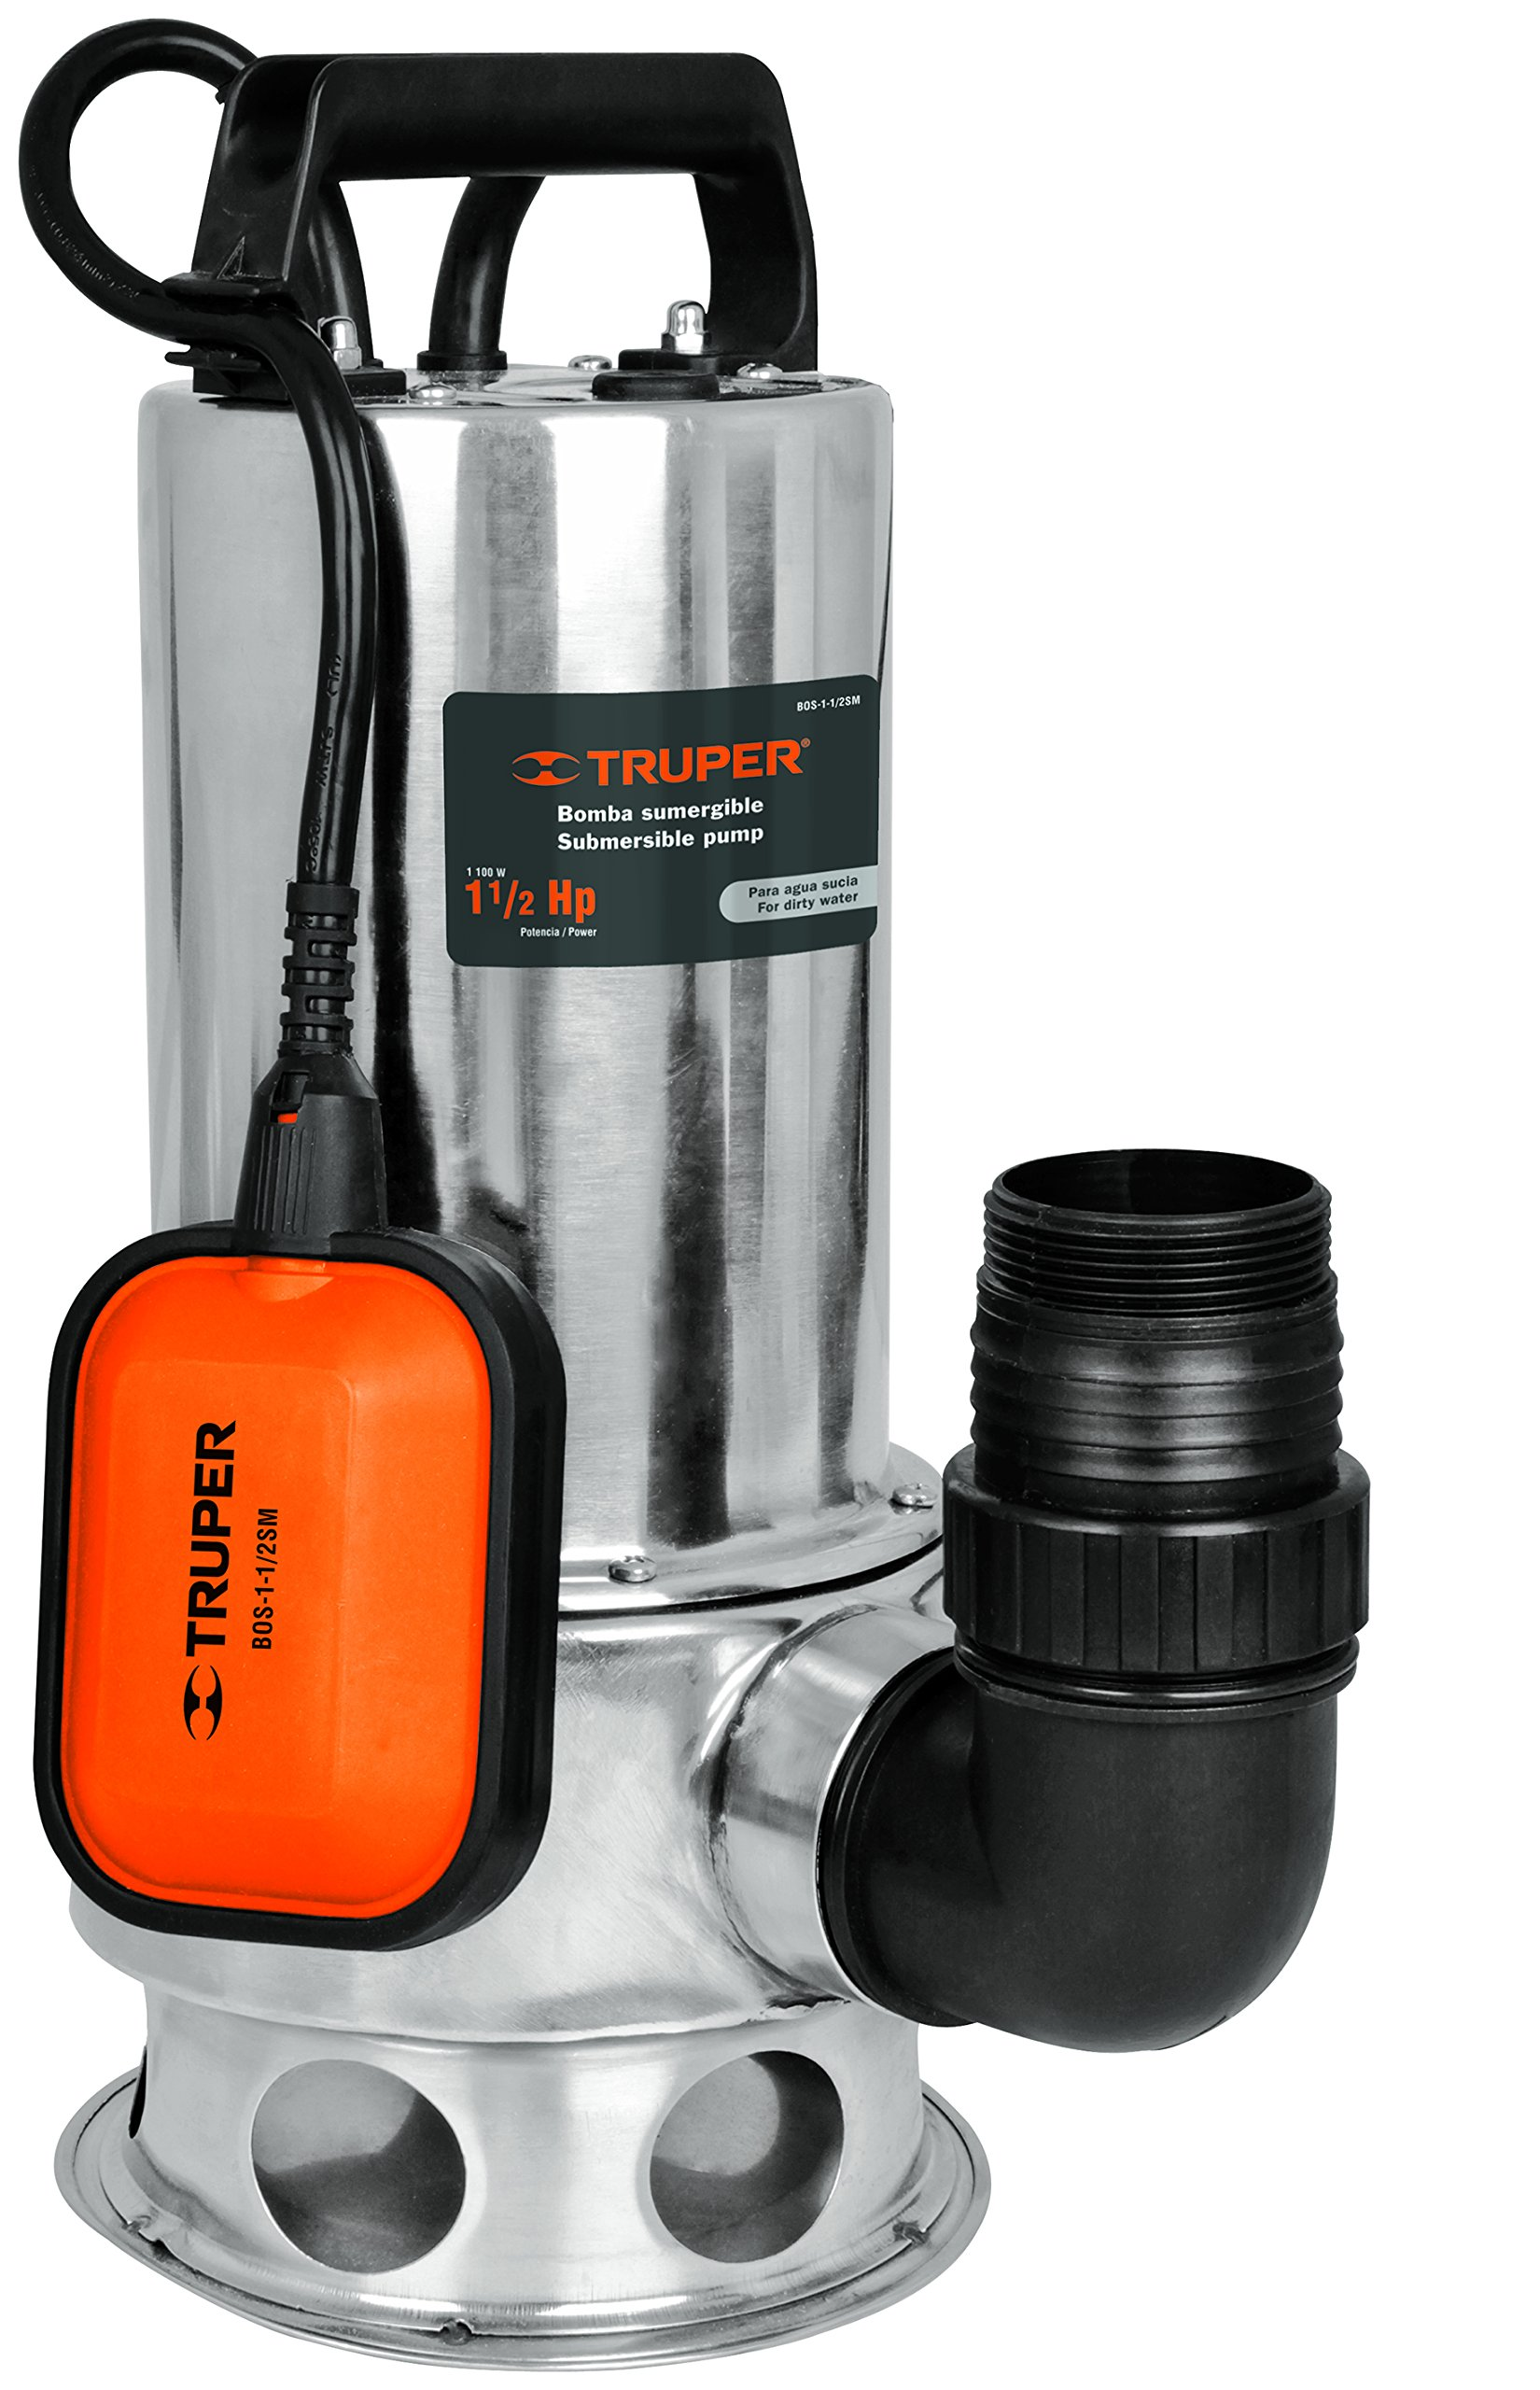 TRUPER BOS-1-1/2SM Heavy Duty Submersible Dirty Water Pumps 1 1/2Hp (1100 w)